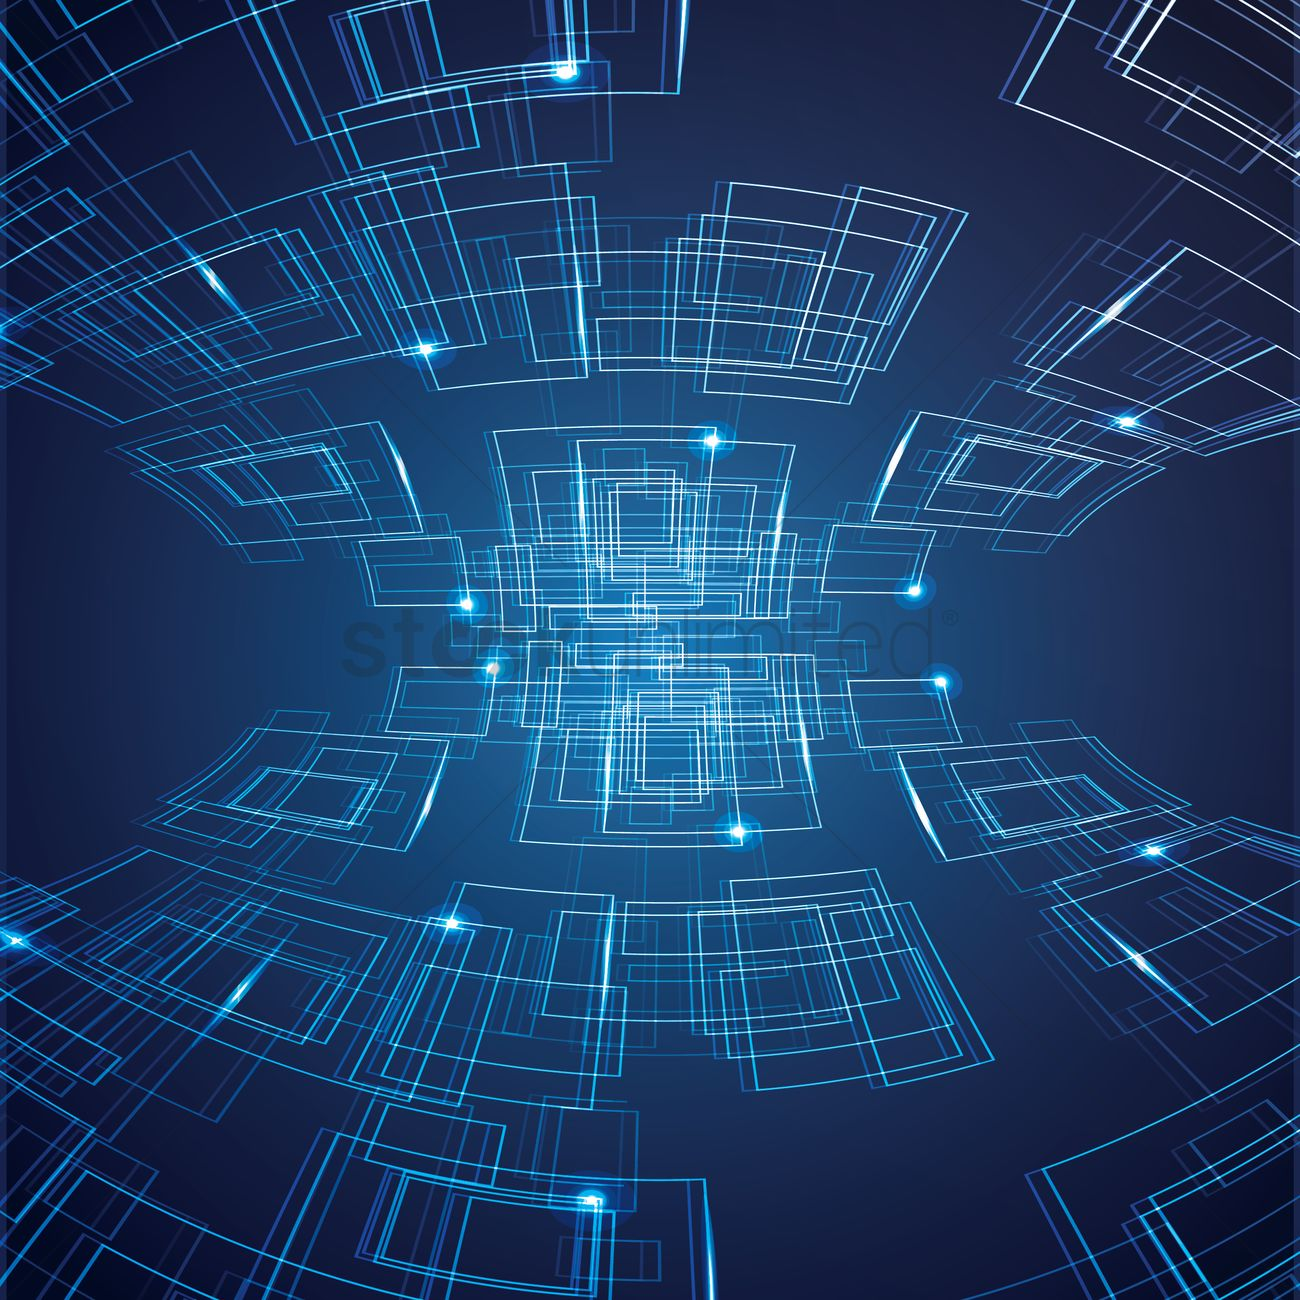 Abstract computer blue background Vector Image - 1516251 ...